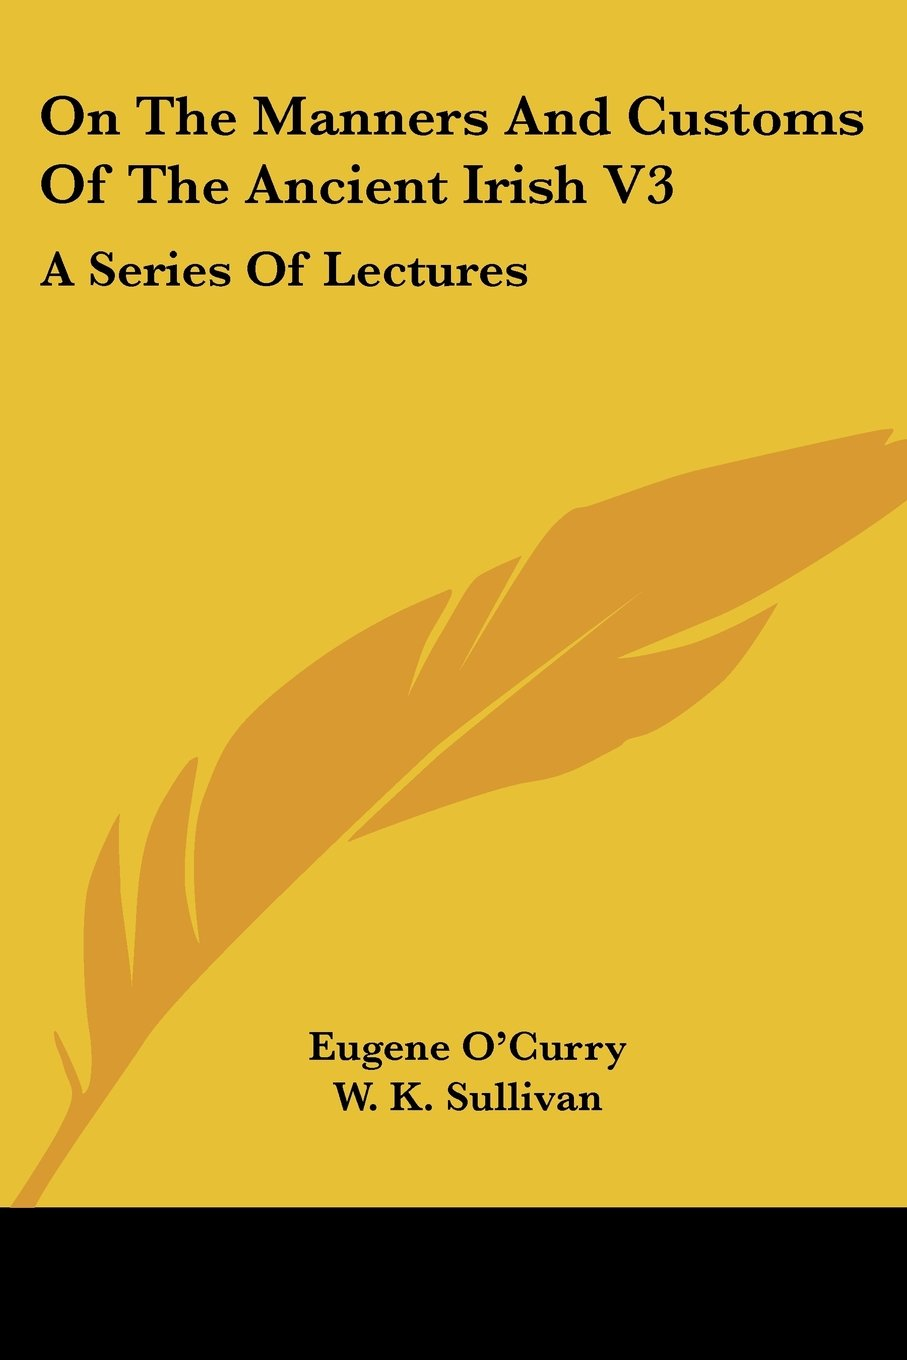 Download On The Manners And Customs Of The Ancient Irish V3: A Series Of Lectures pdf